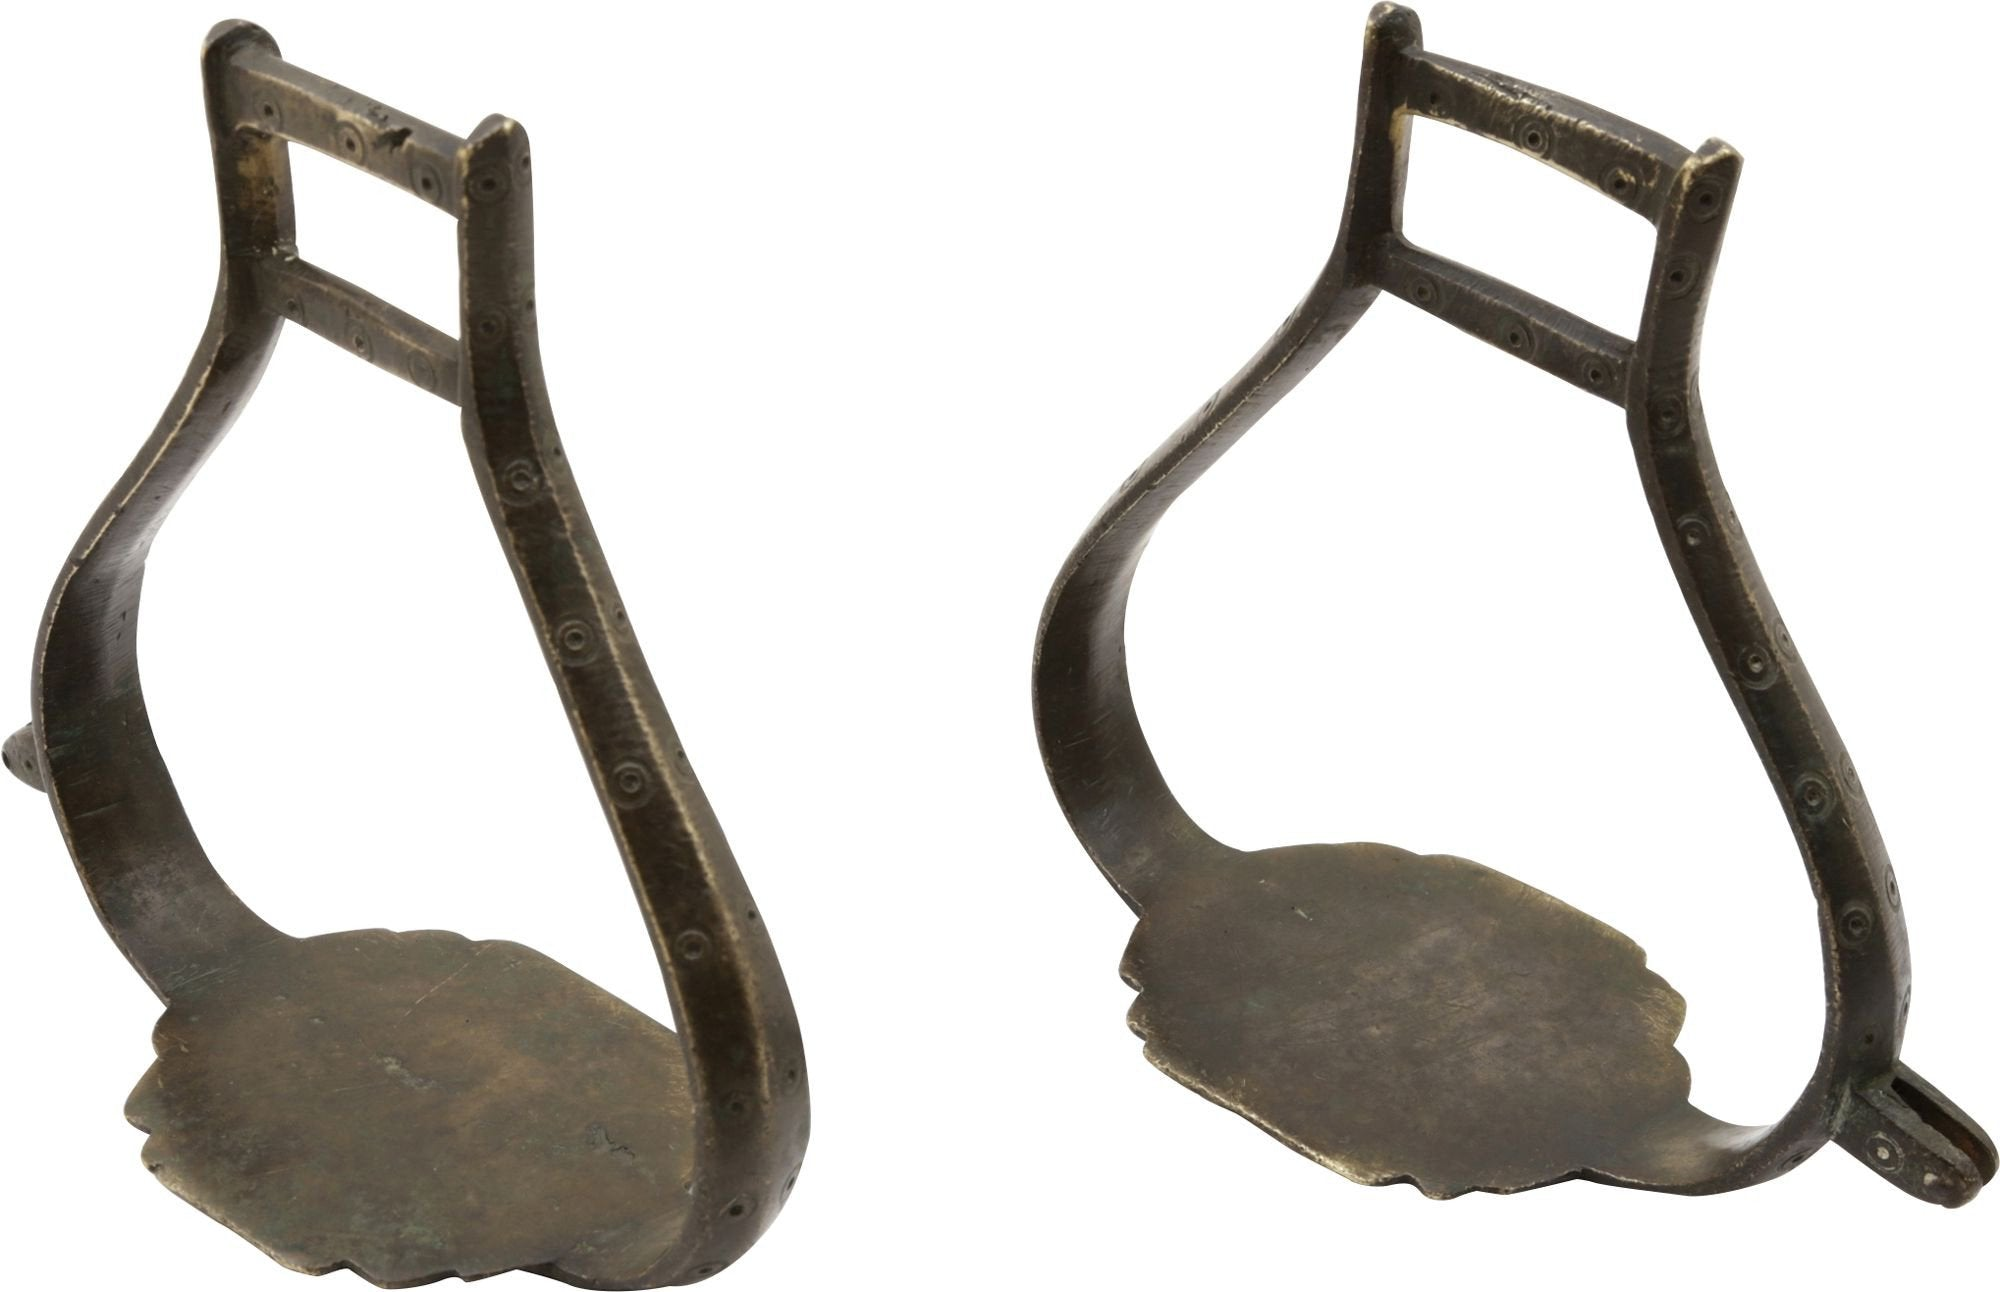 Pair Of Ottoman Stirrups - Product